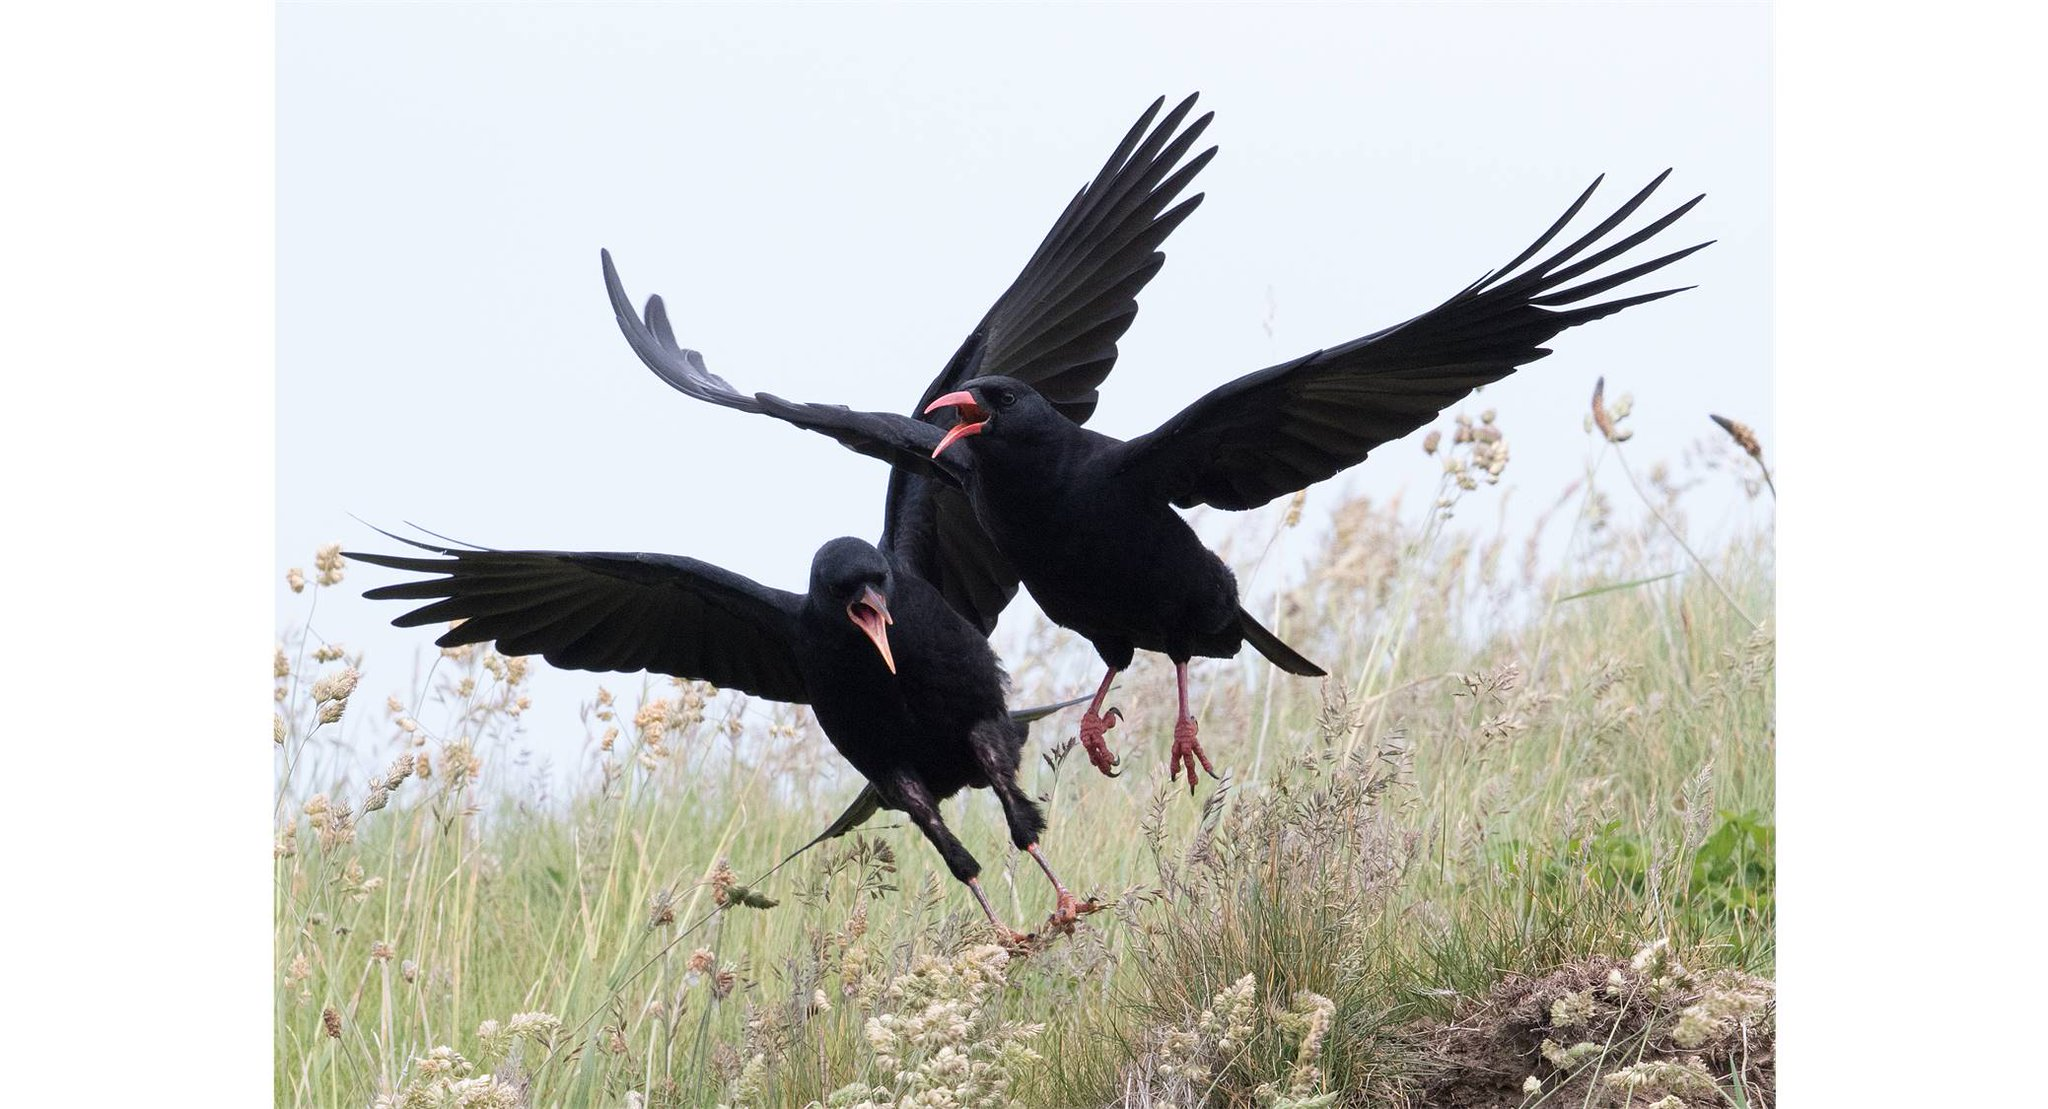 #BTOConf16 kicks off in style with Tony Cross & Adrienne Stratford on their fab long-term project discovering the secrets of Welsh Choughs https://t.co/8pZK7OulTK